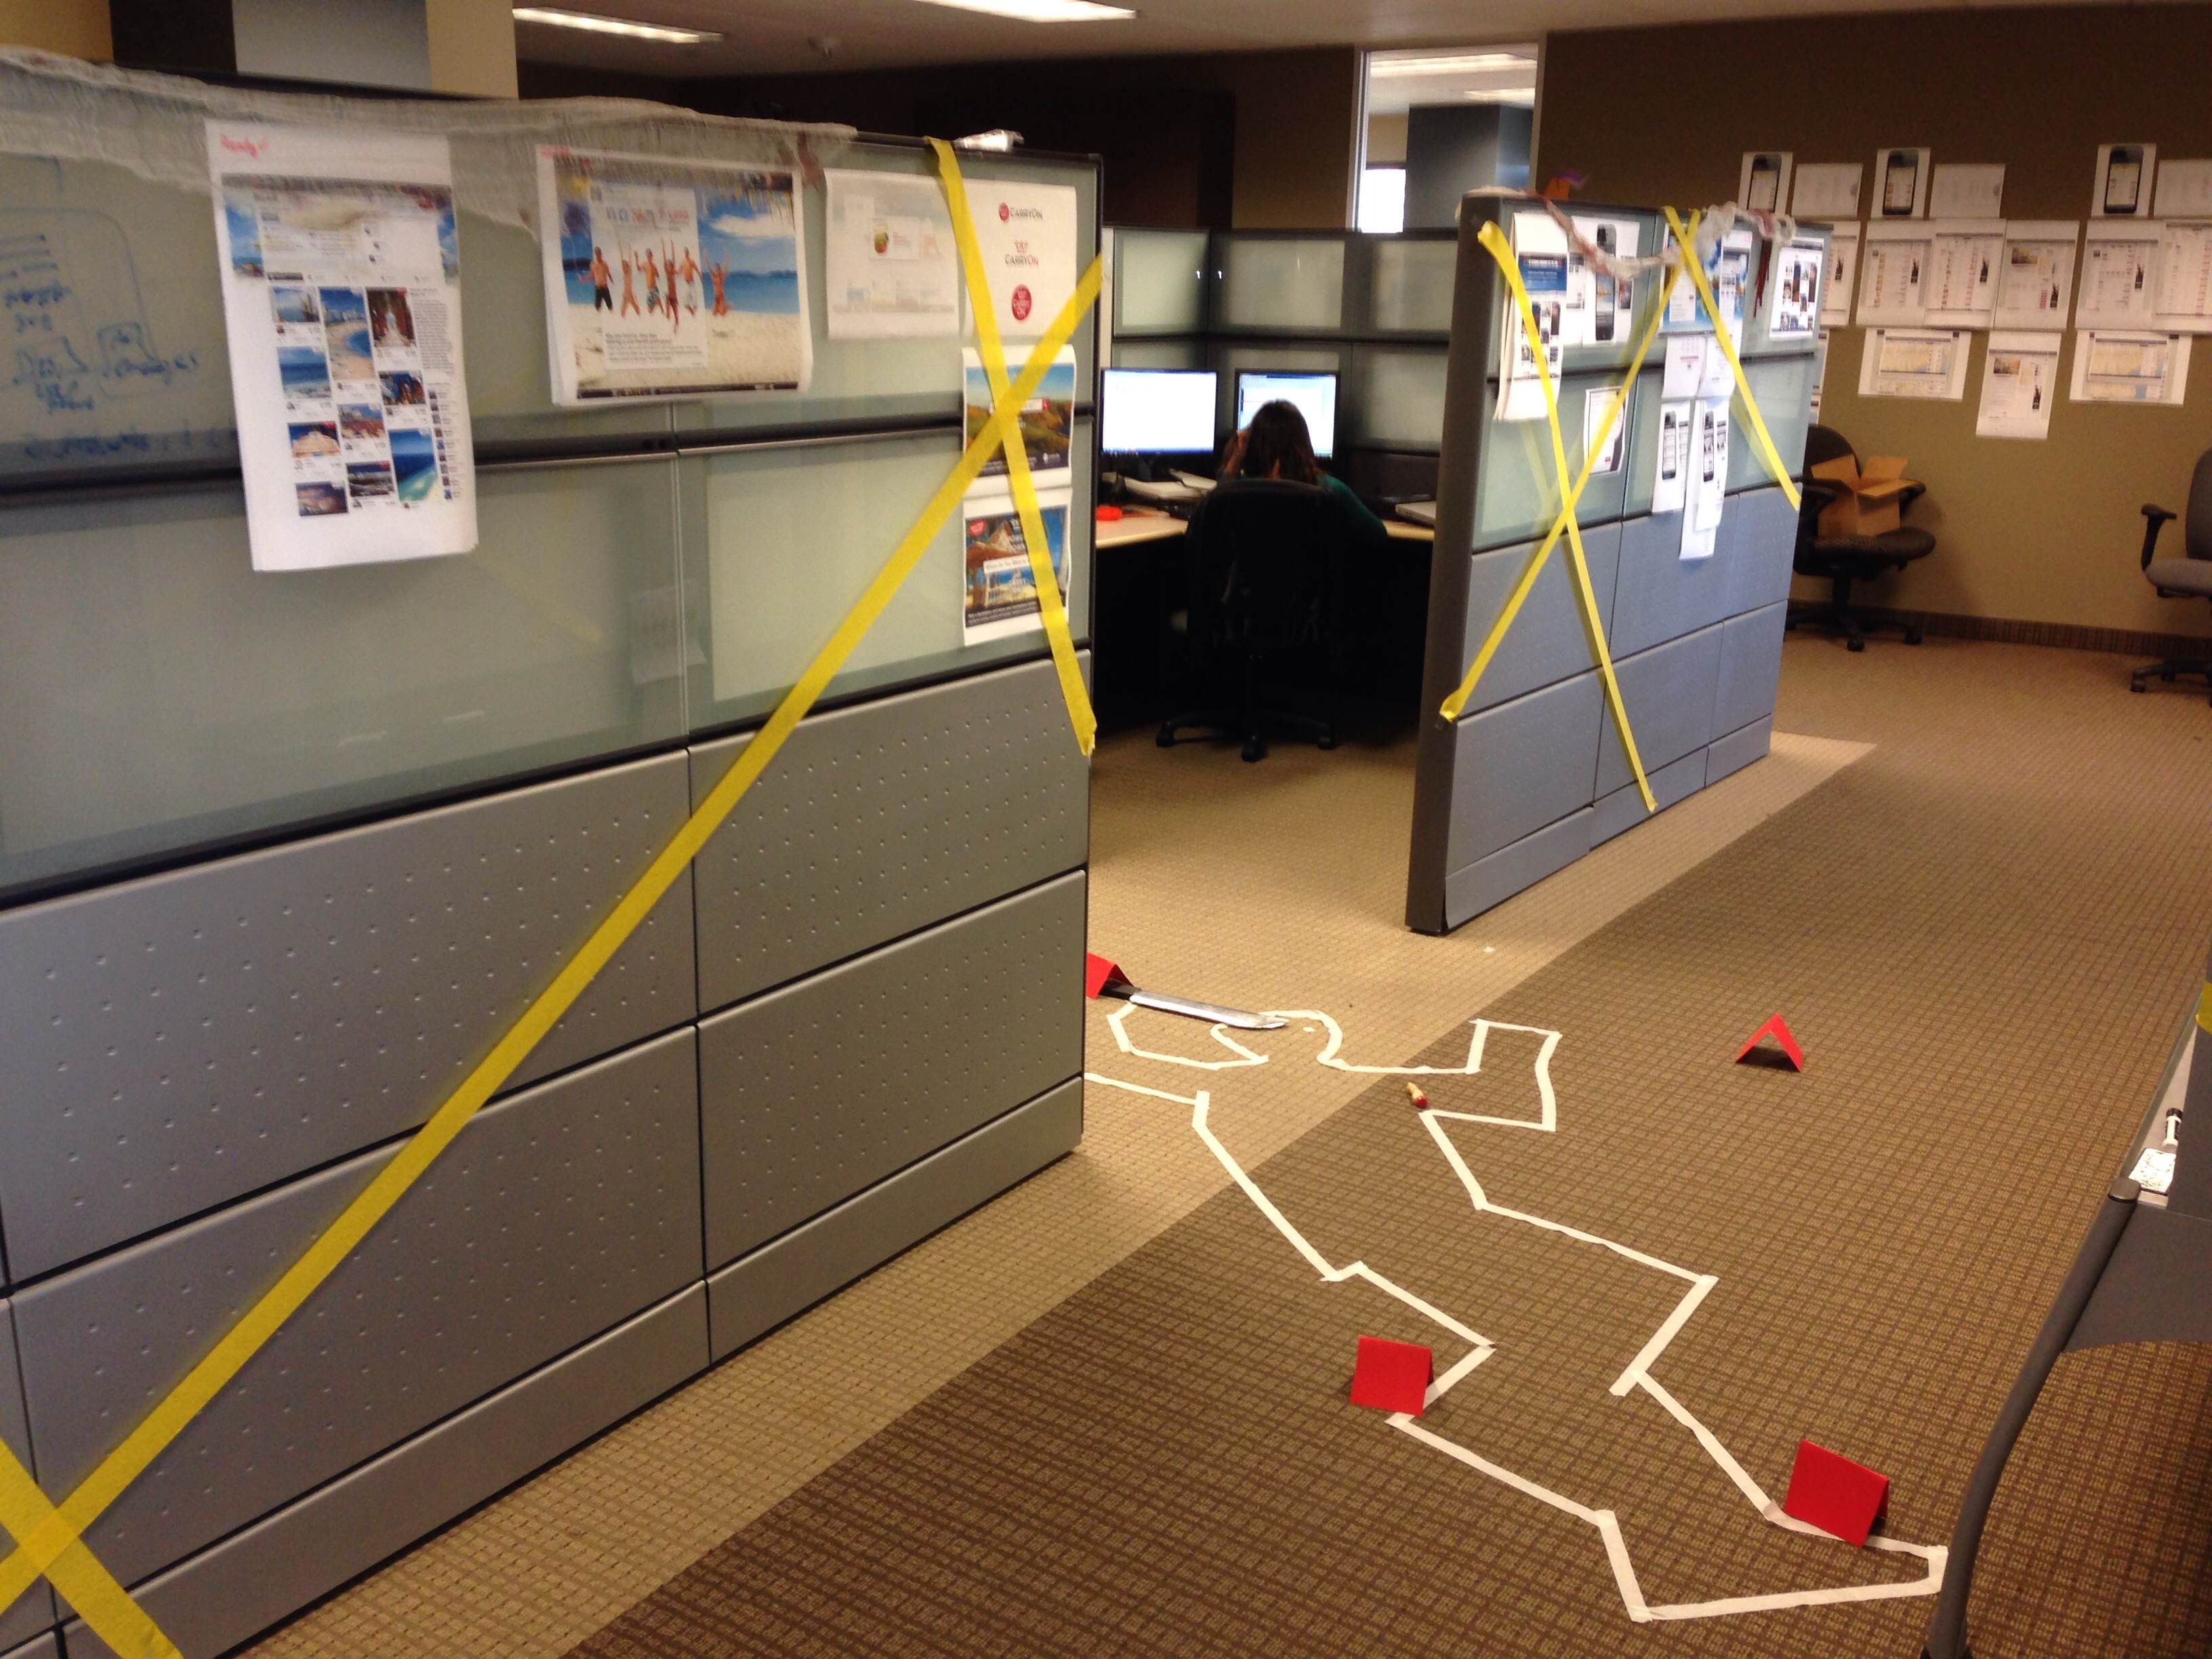 halloween theme decorations office. Cube Decorating Contest In The Office. Happy Halloween! Crime Scene Halloween Theme Decorations Office